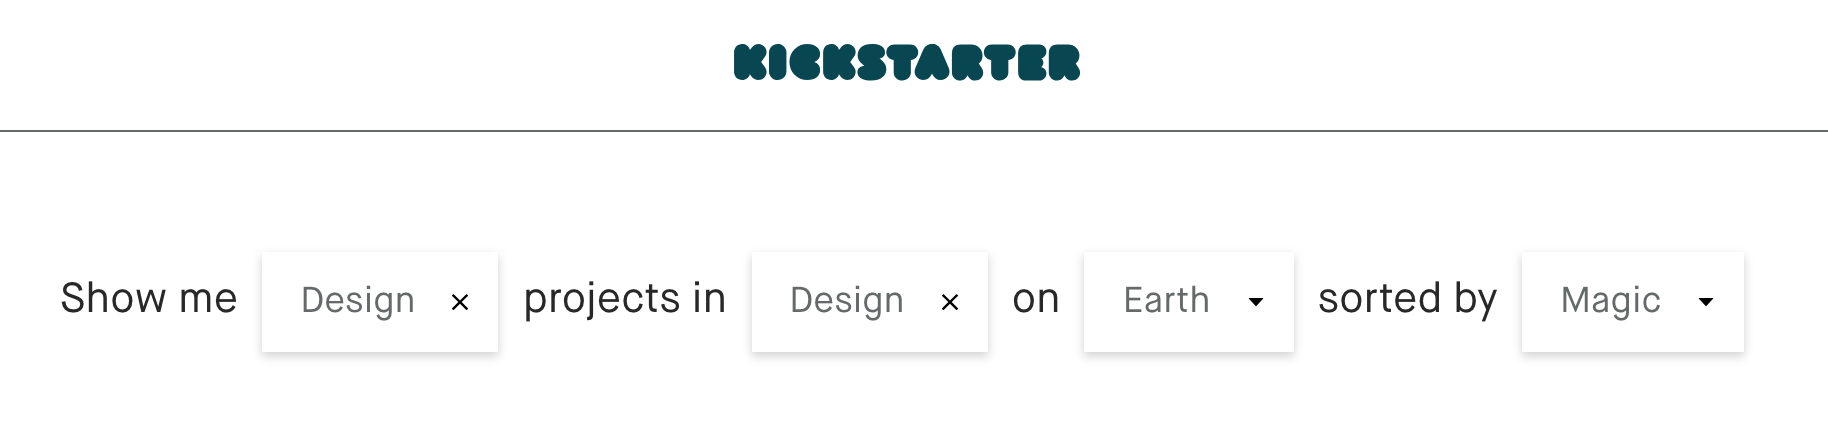 Kickstarter's search functionality